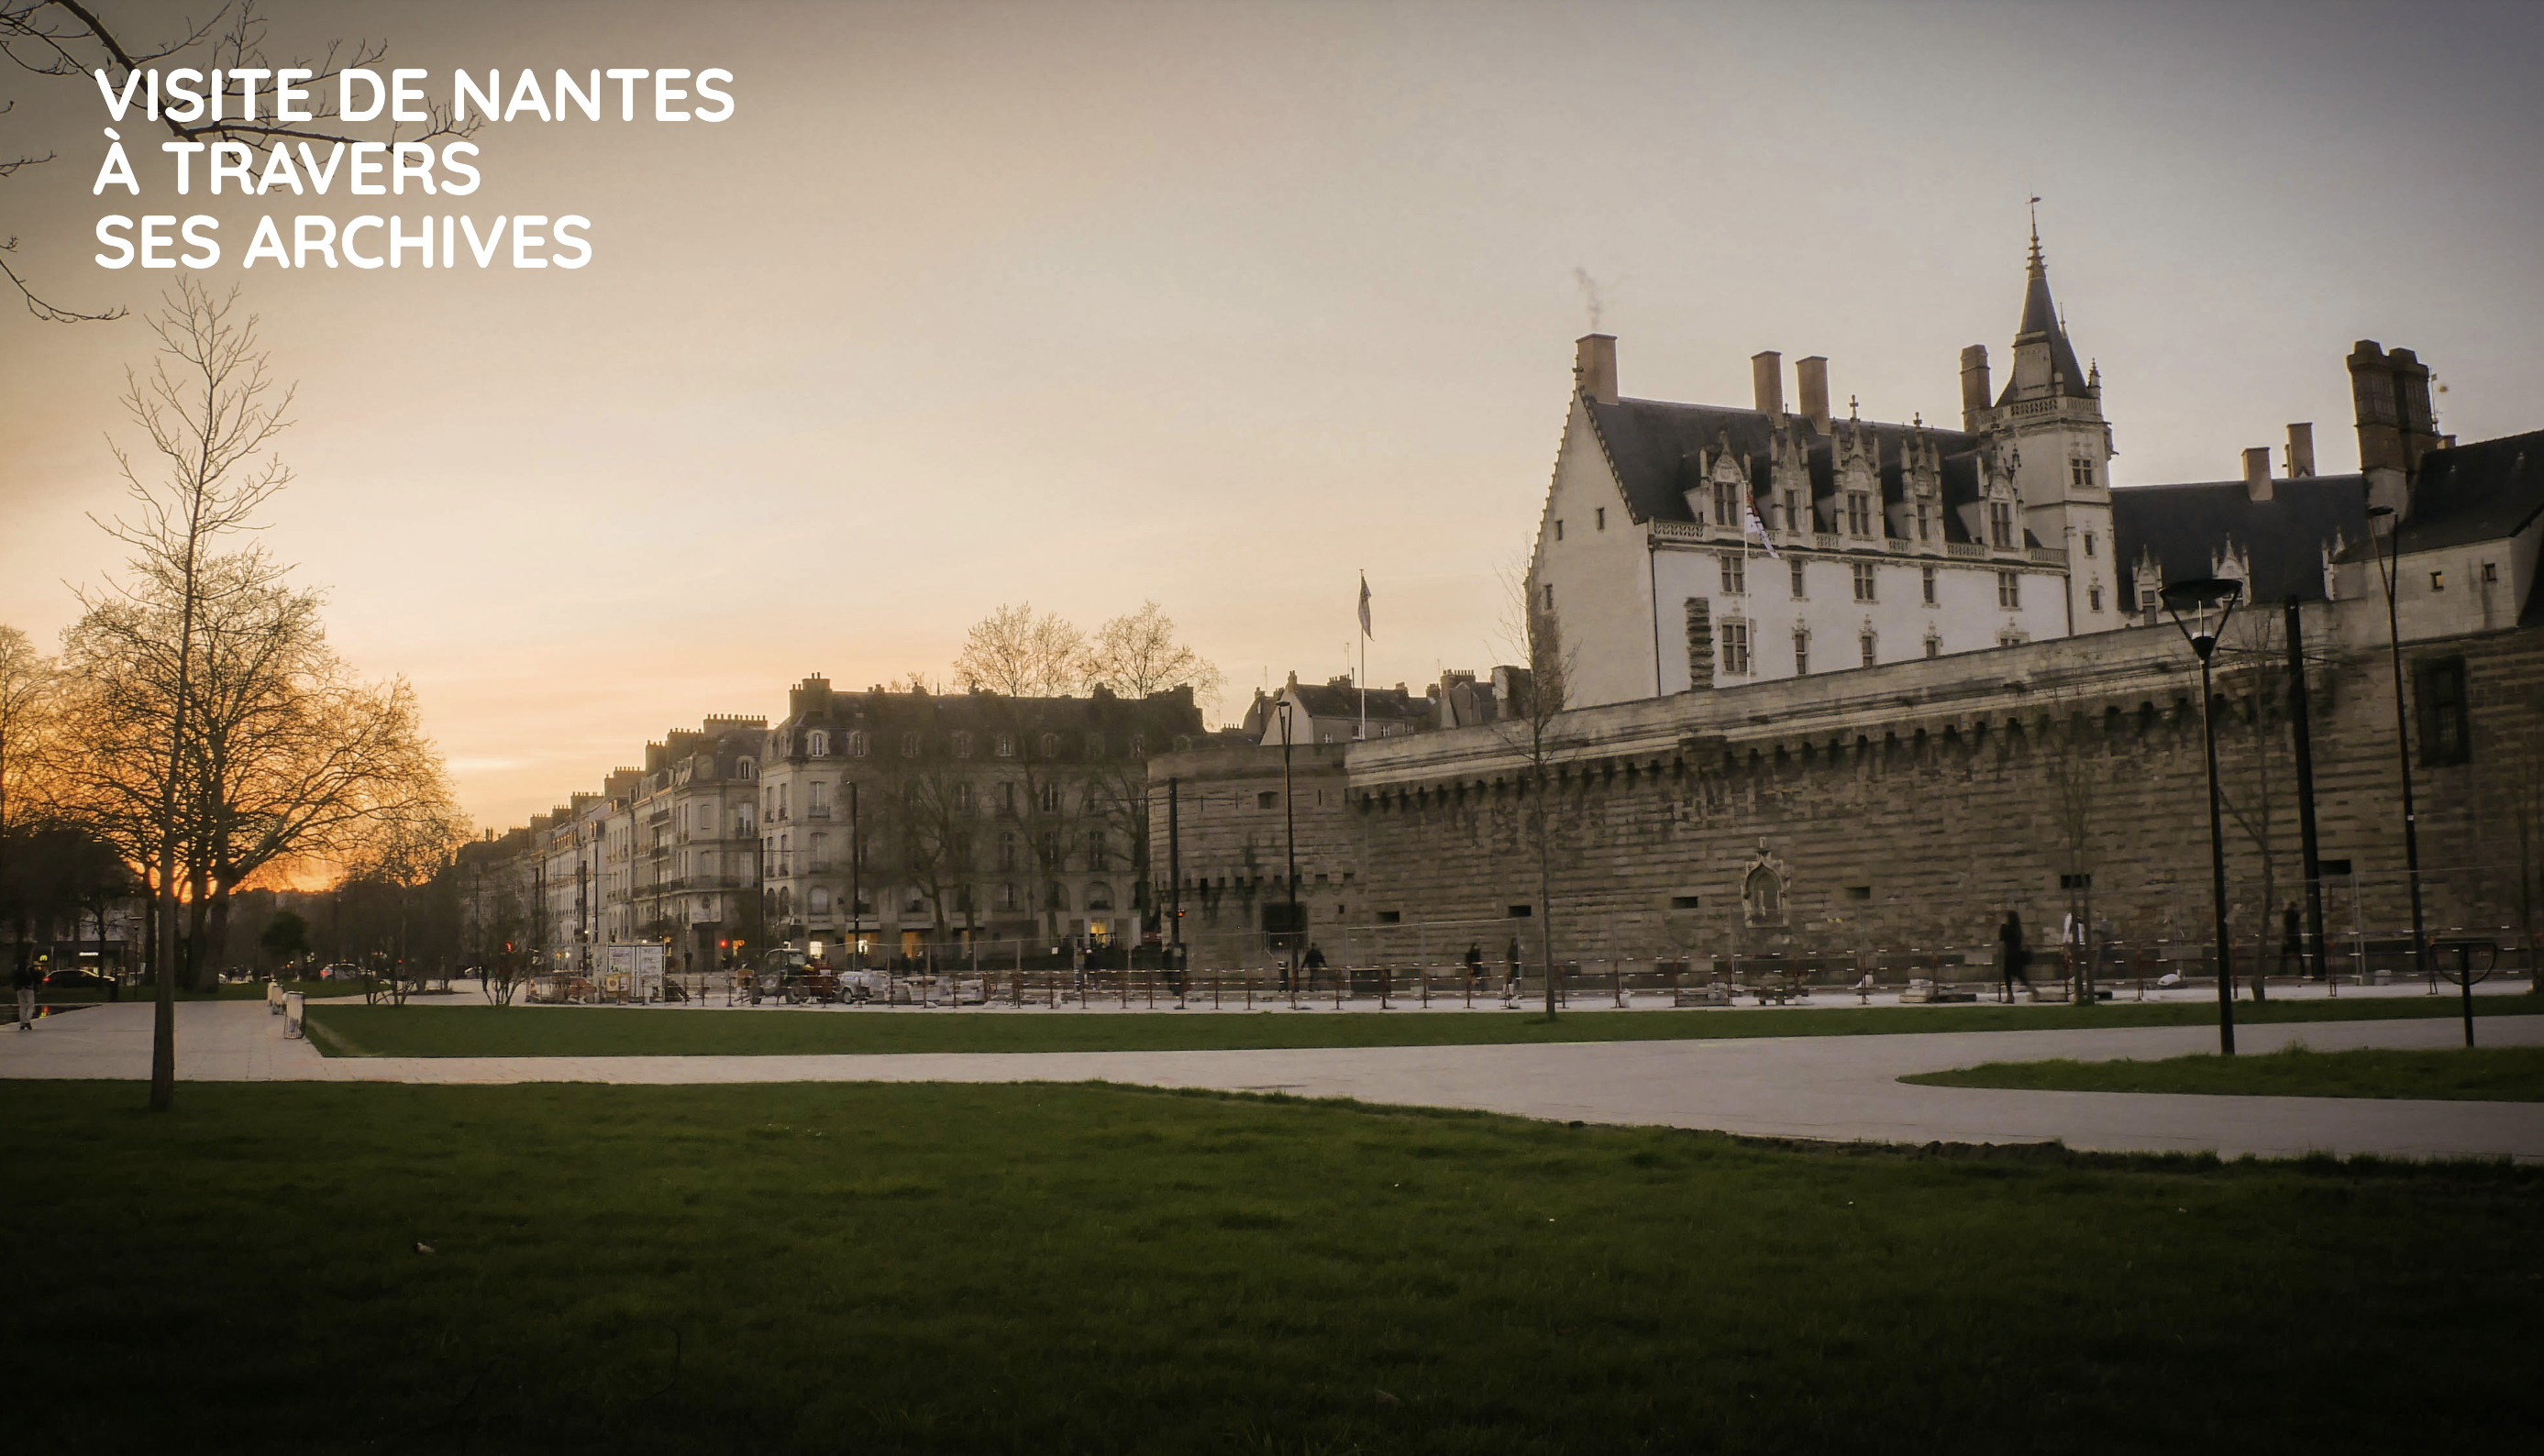 Visite de Nantes à travers ses archives